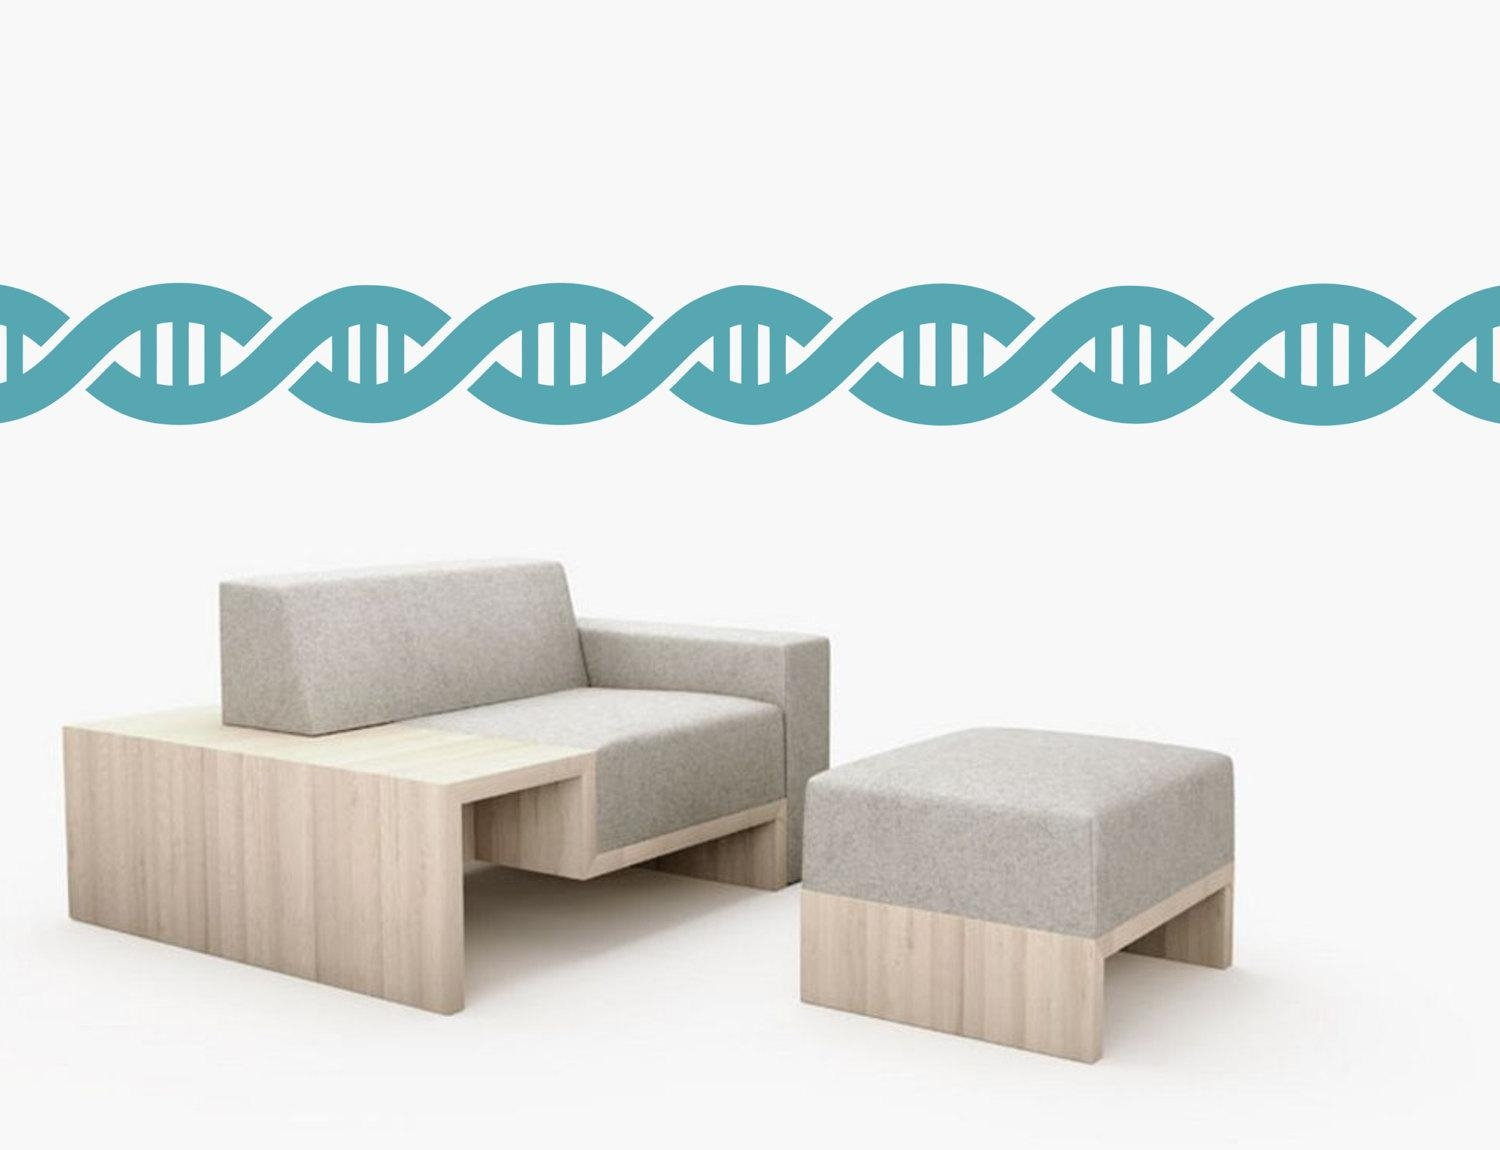 Dna Double Helix Stripes Wall Art Border Removable Vinyl In Dna Wall Art (Image 9 of 20)